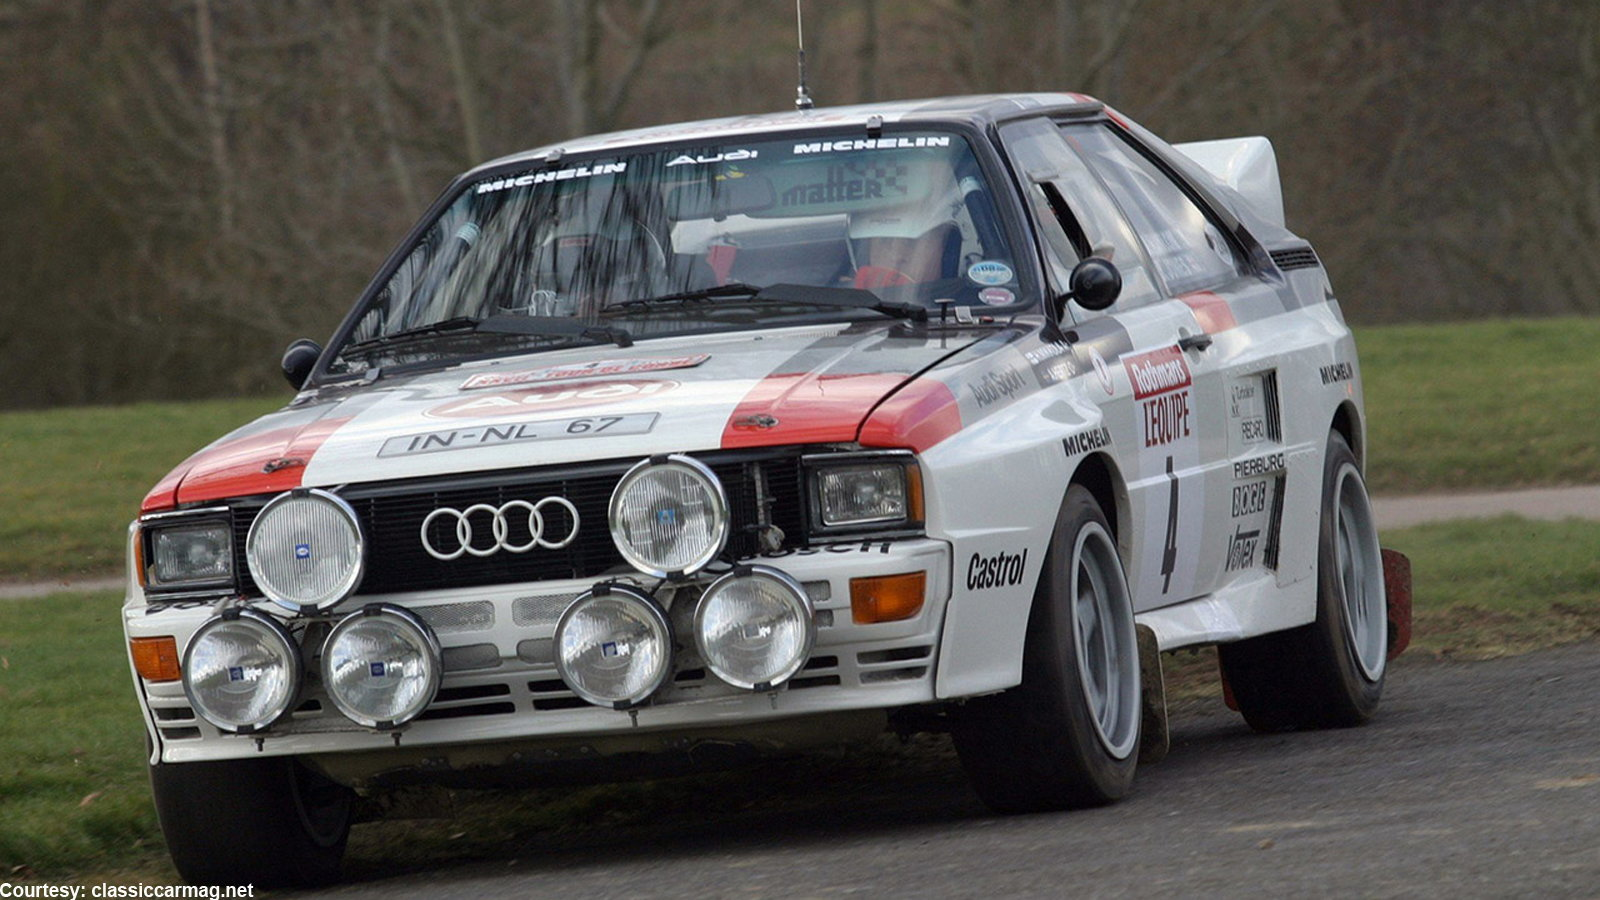 audi quattro rally 1983 cars sport 1986 facts racing fotos rs a1 fiat classic 1982 motor rallying